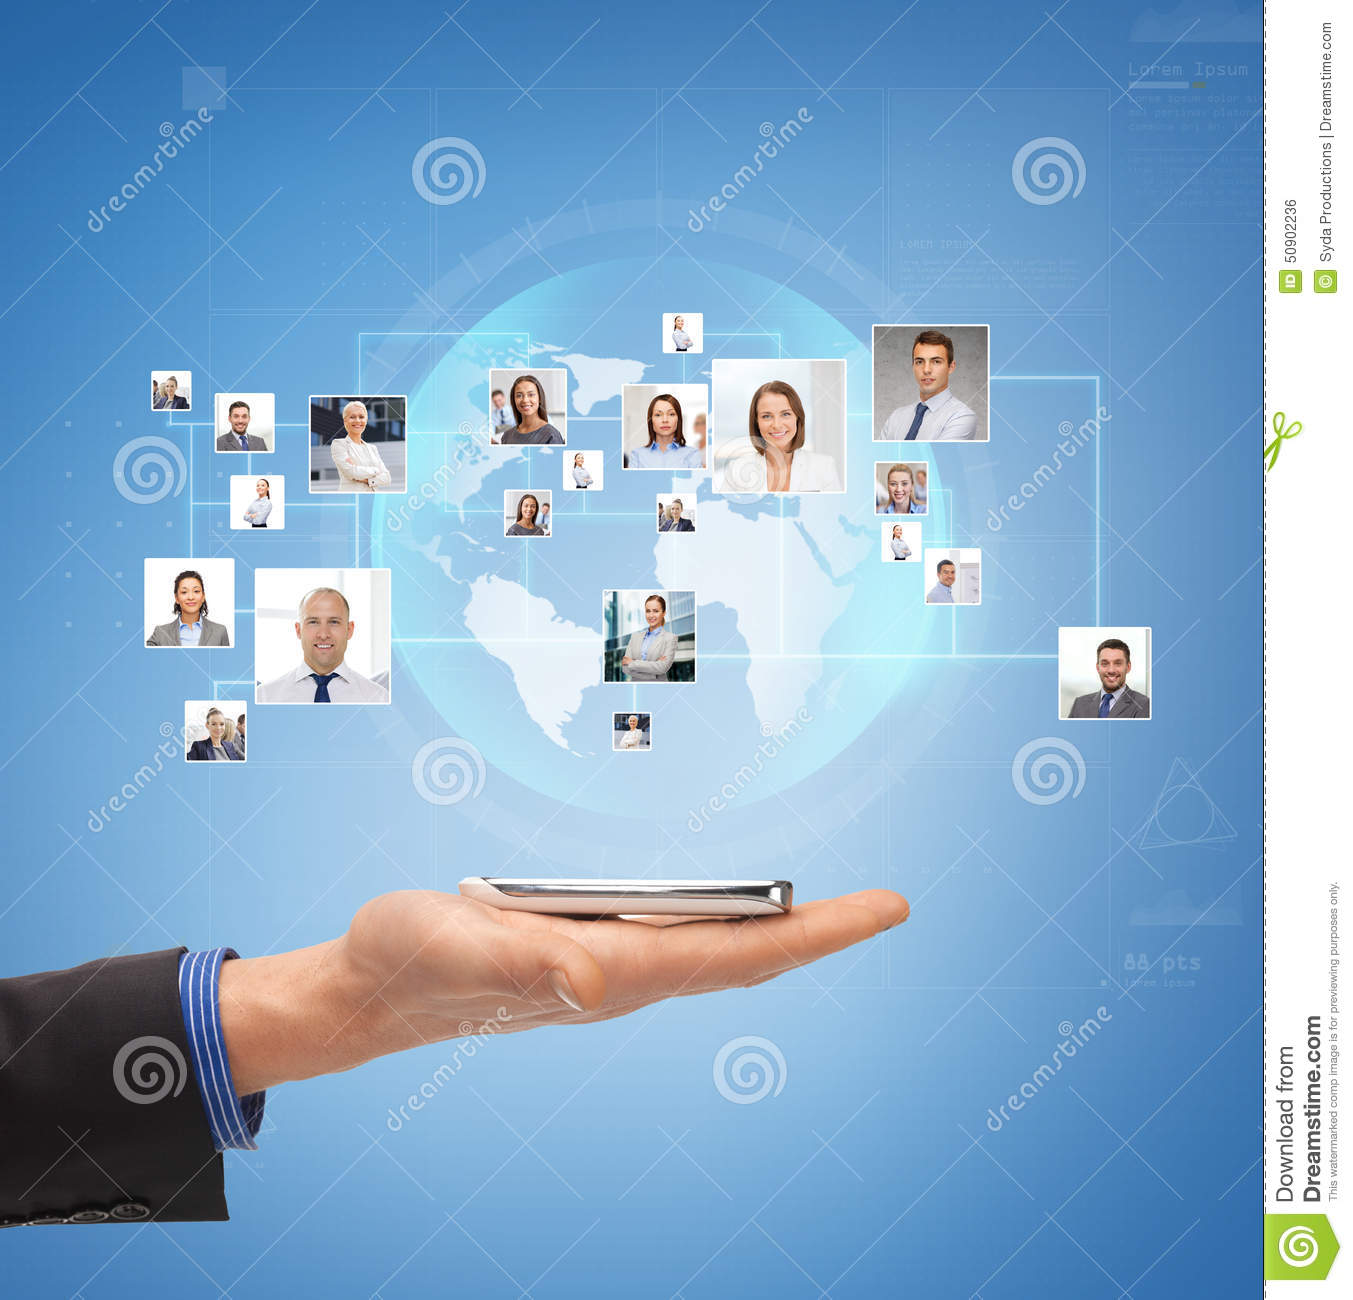 Business Contact: Male Hand With Smartphone Over Icons Of Contacts Stock